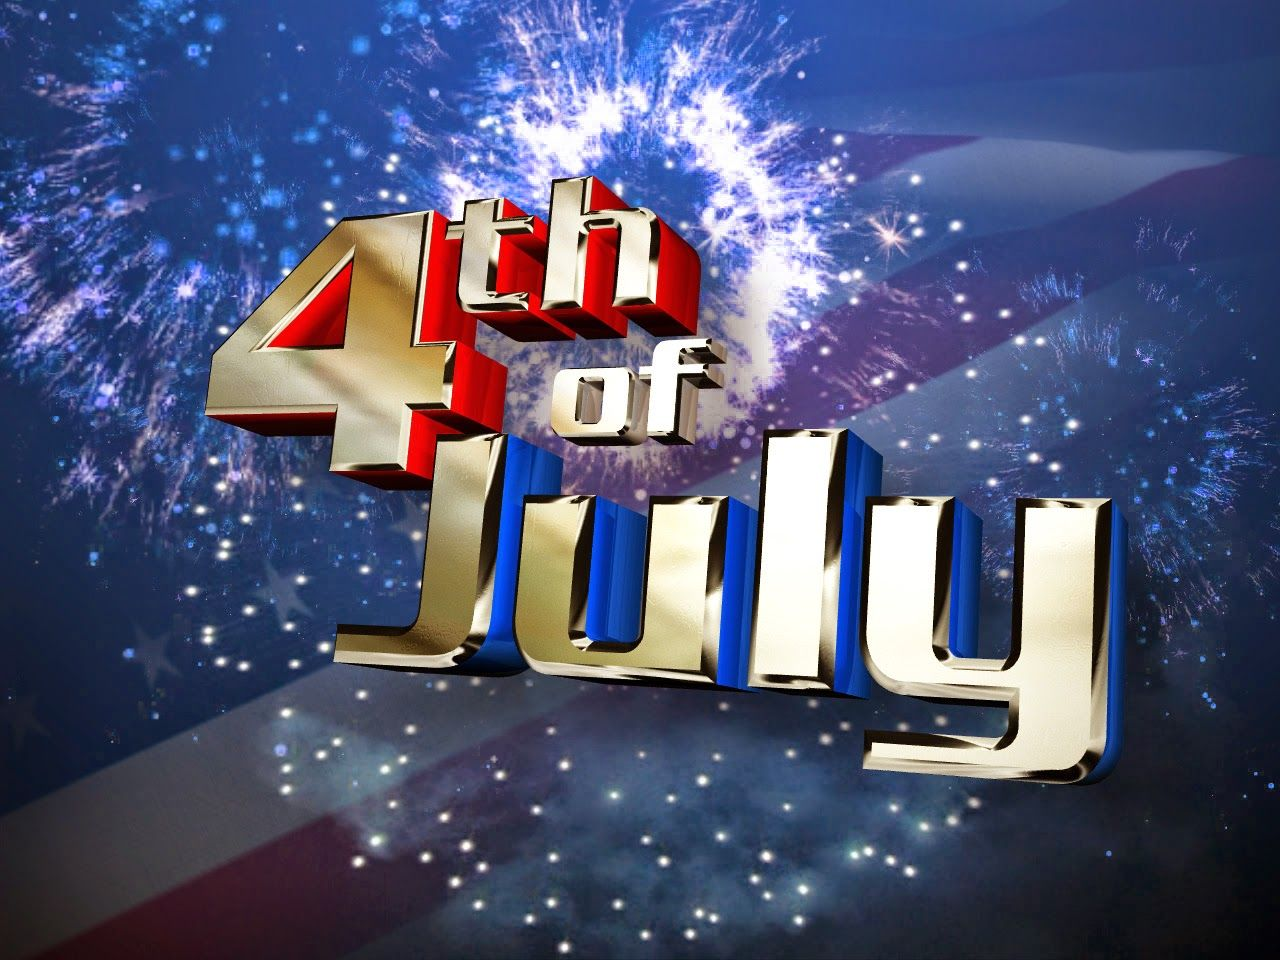 Happy 4th of july 2016 happy new year 2016 cards sms wallpaper happy 4th of july 2016 happy new year 2016 cards sms wallpaper m4hsunfo